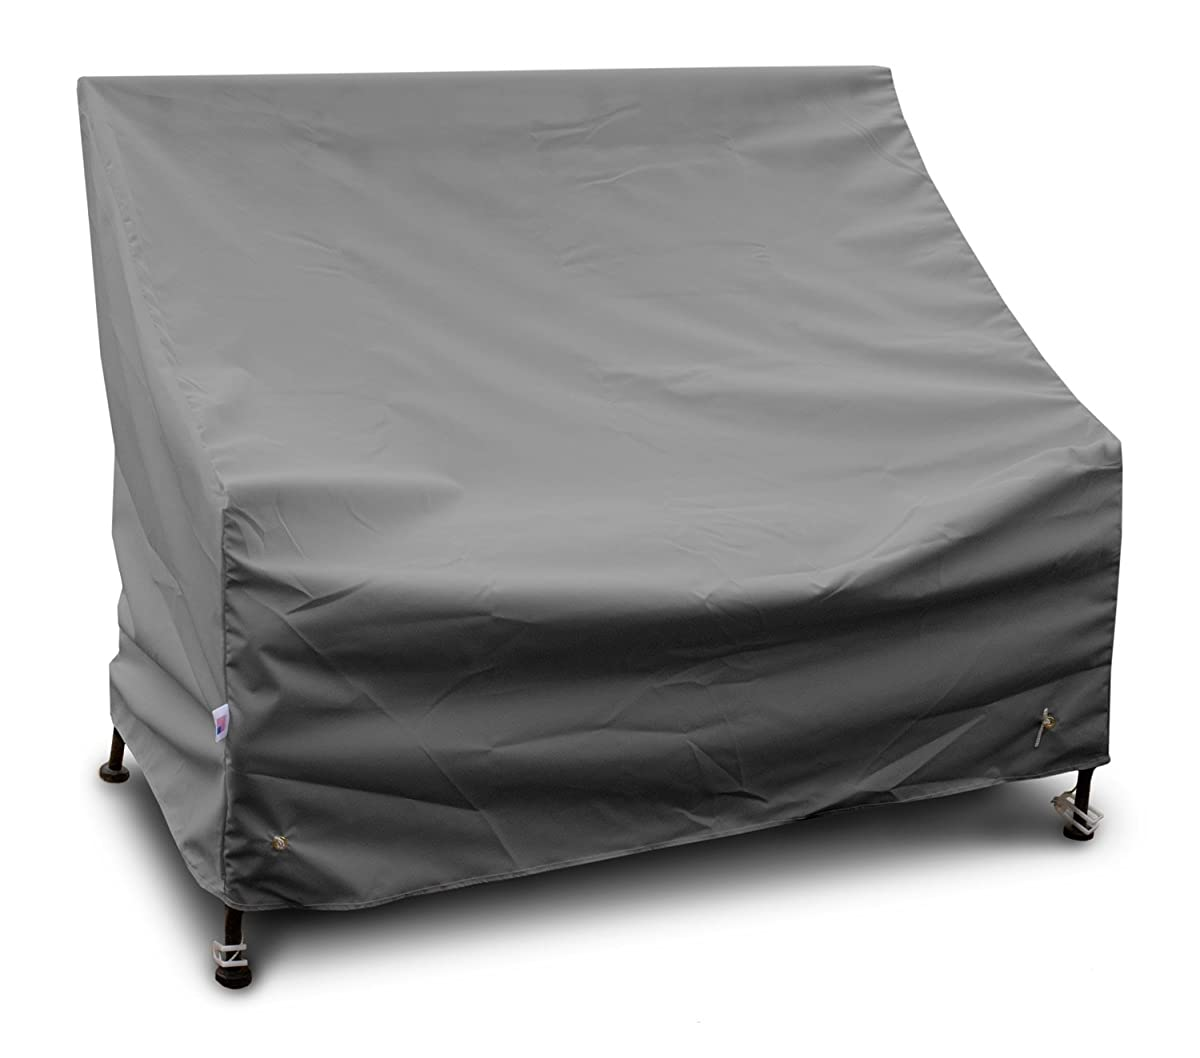 KoverRoos Weathermax 84203 5-Feet Bench/Glider Cover, 63-Inch Width by 28-Inch Diameter by 37-Inch Height, Charcoal